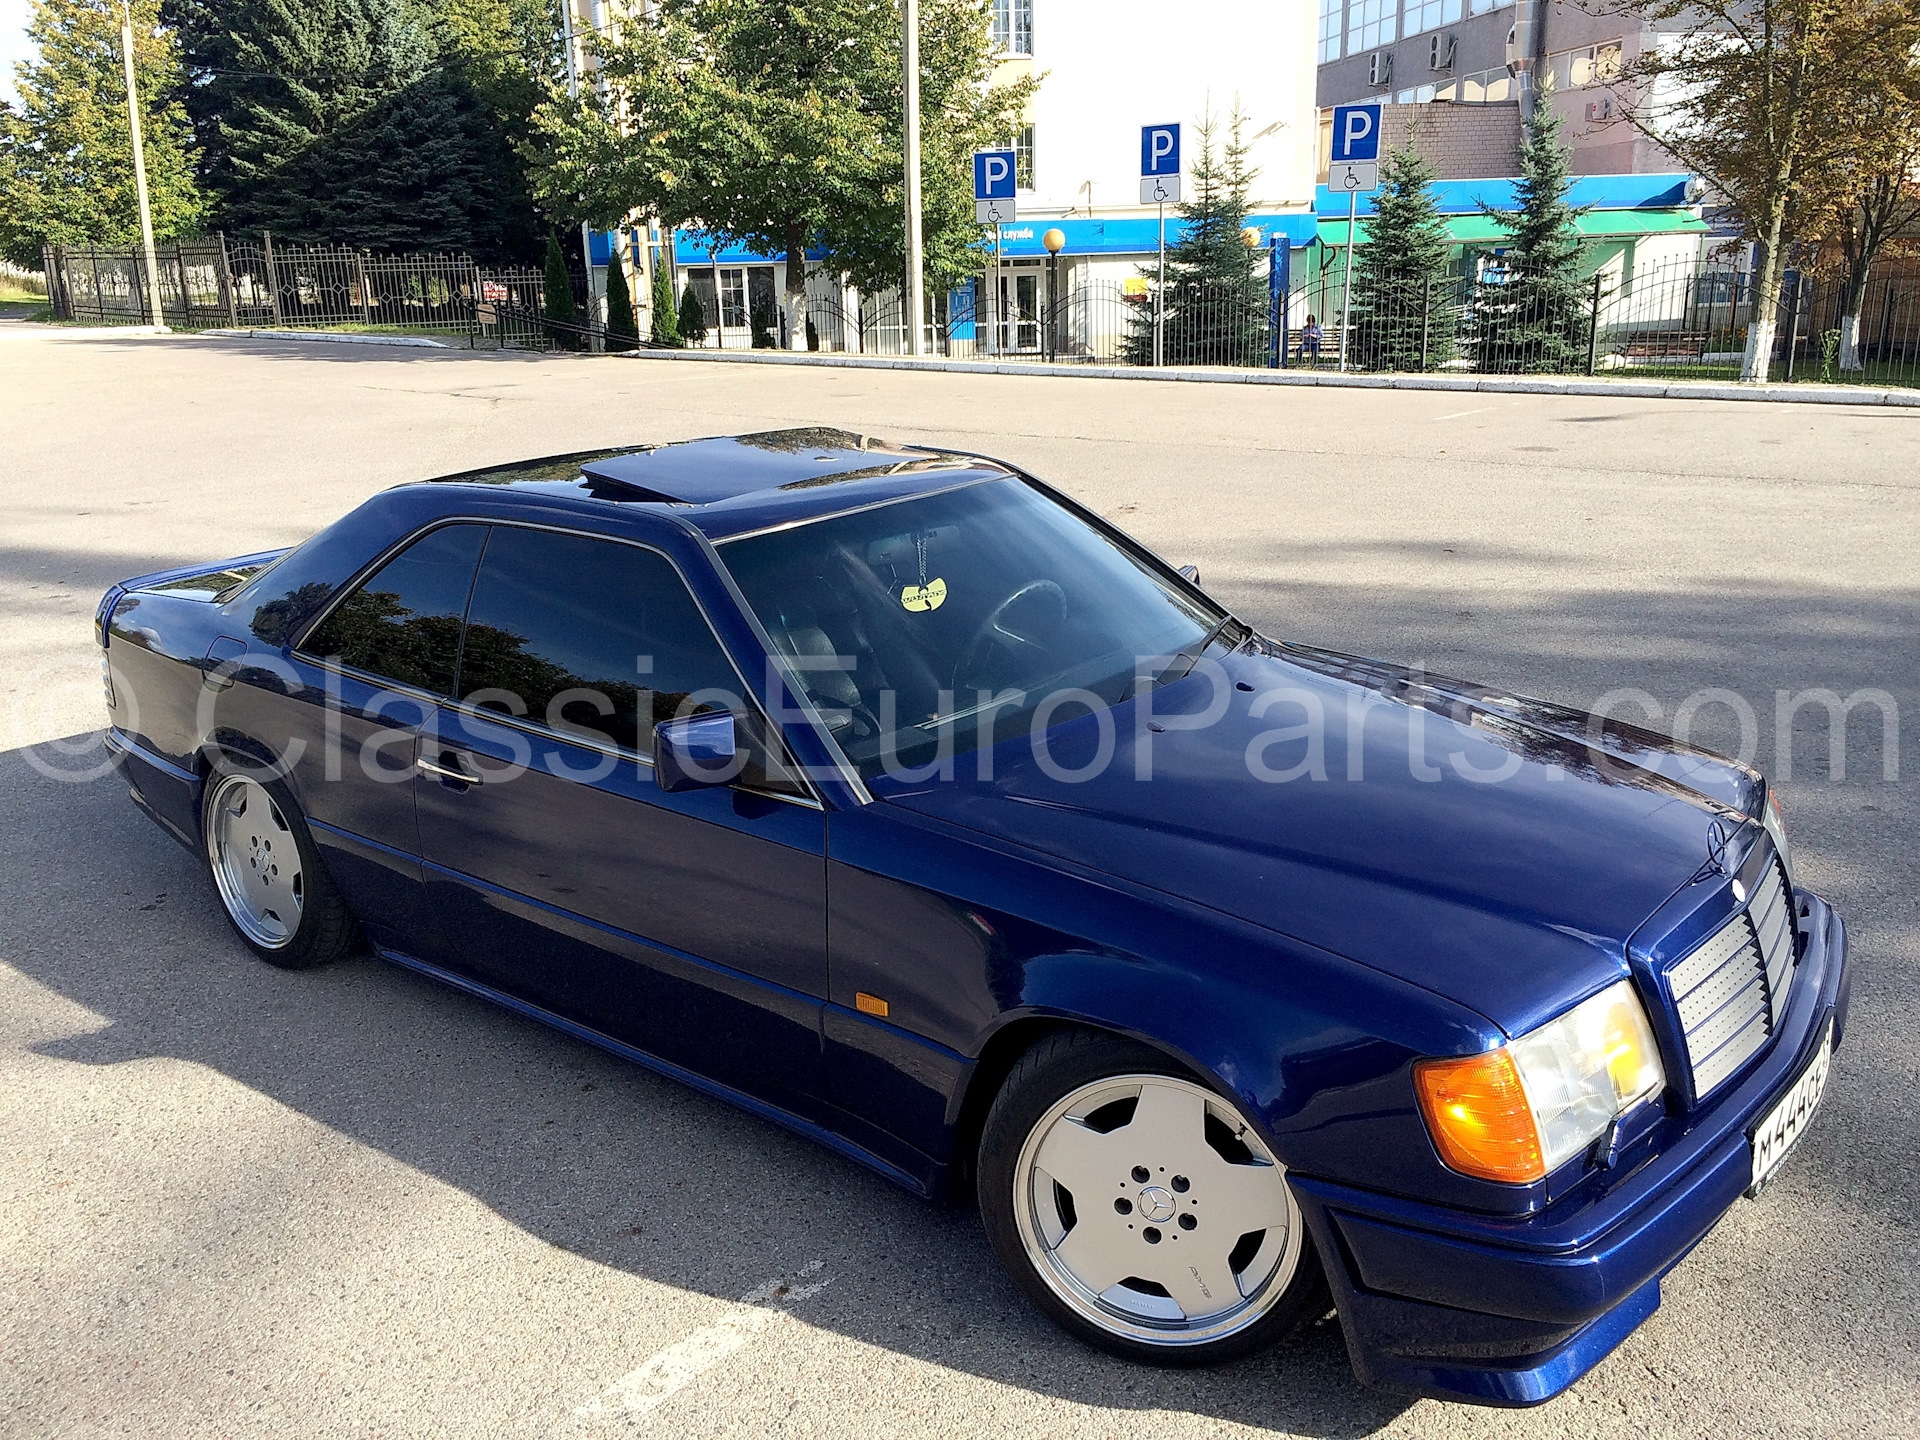 17 8 Et28 Replacement Wheel Set For W124 With Amg Aero Body Kit Classiceuroparts